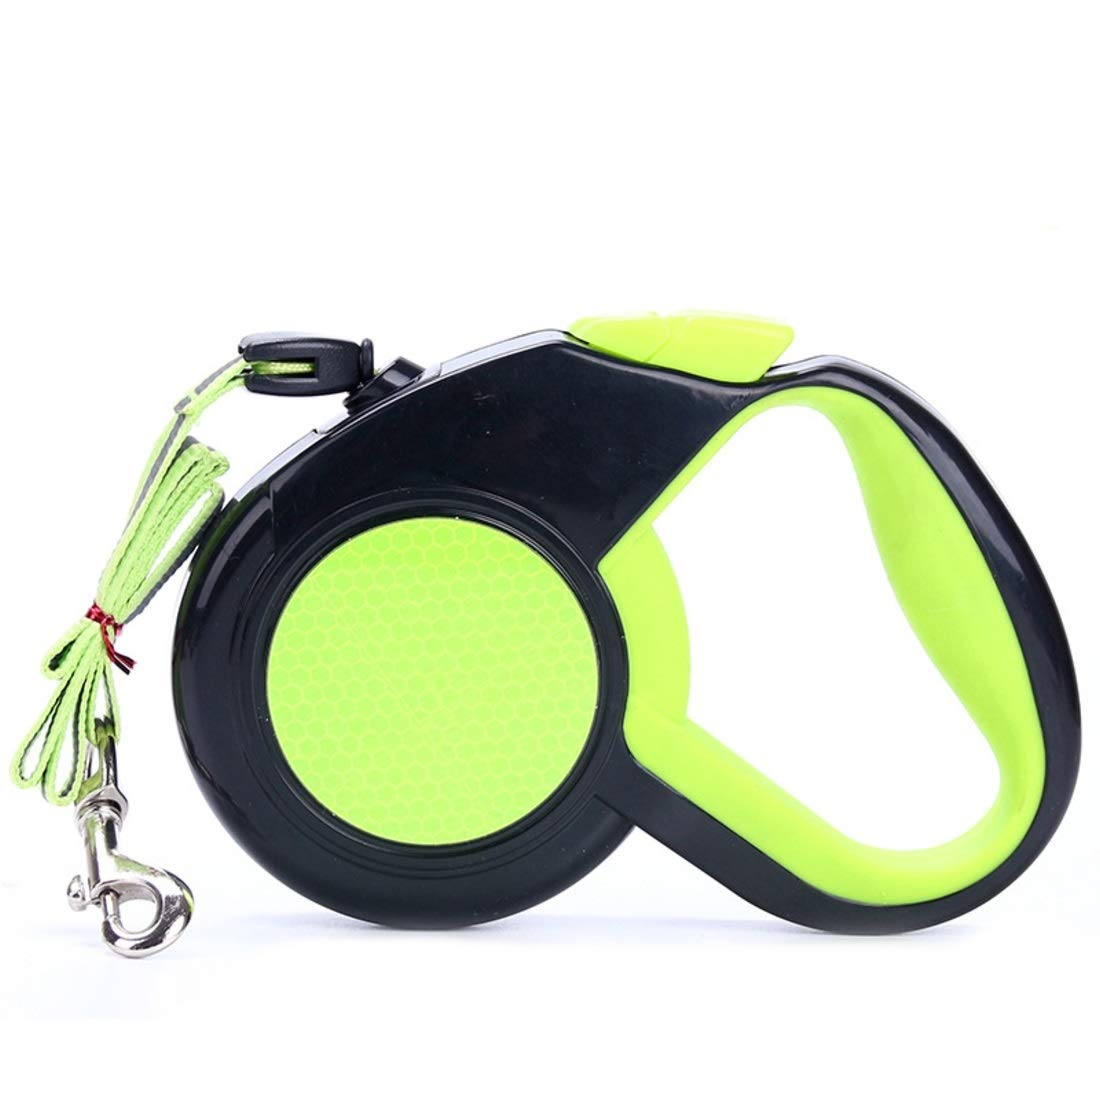 Green Small Green Small Souliyan Retractable Dog Leash,Durable Heavy-Duty Retracting Pet Leash,1-Button Control Reflective Rope (color   Green, Size   S)